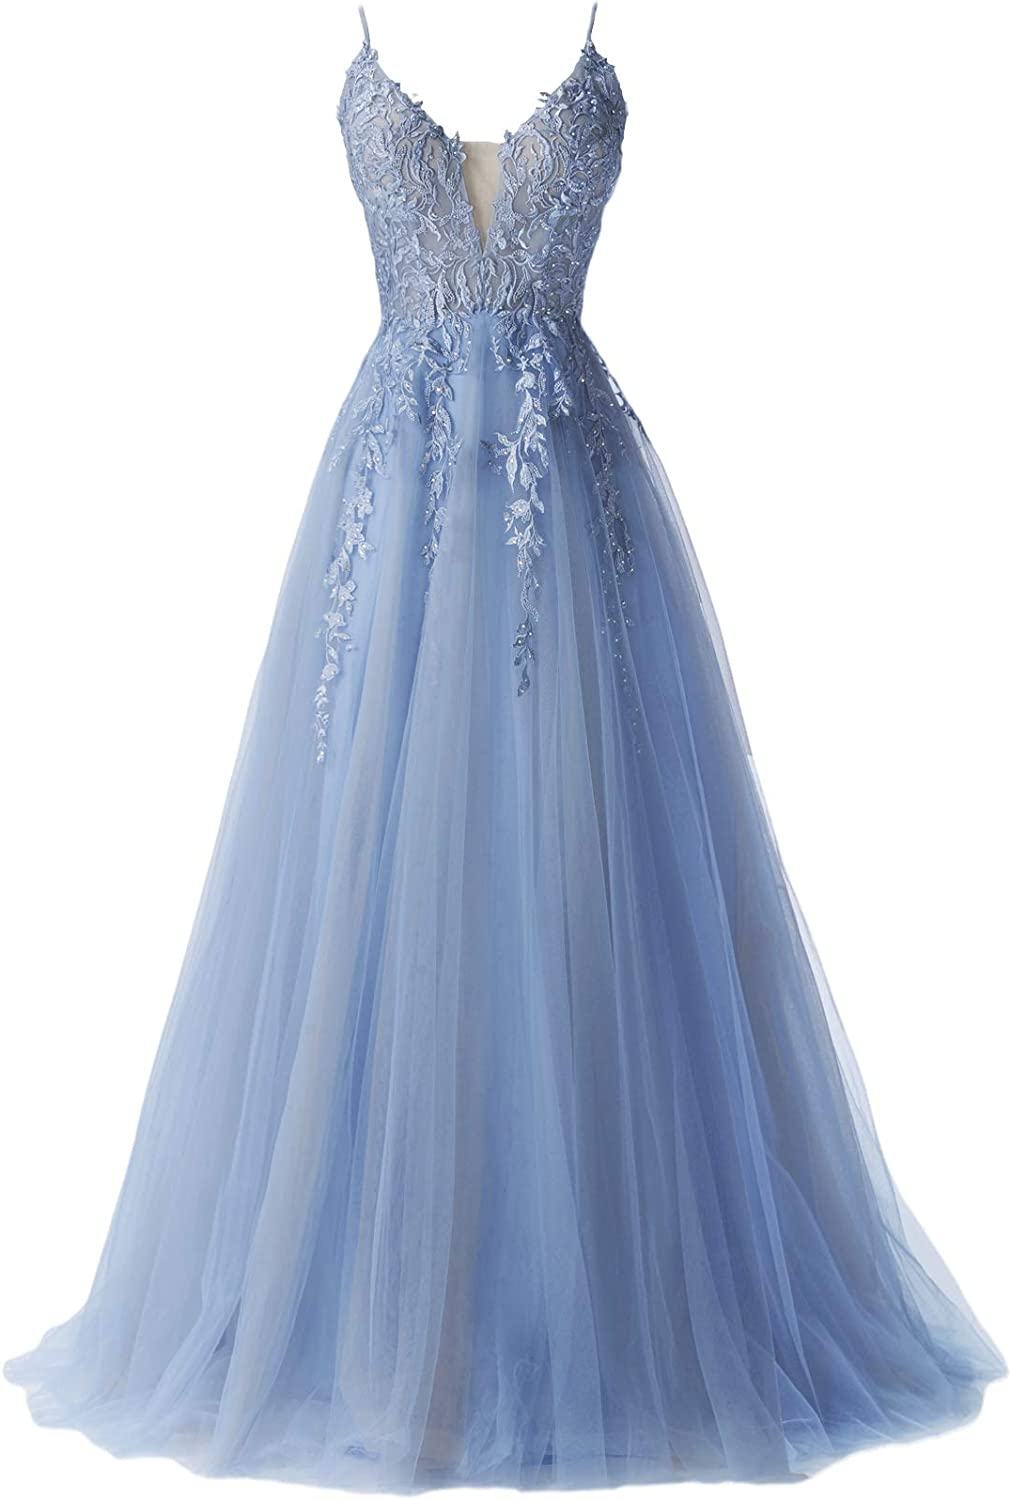 Women's Prom 完全送料無料 Dresses 2021 Formal Evening with Dress V 在庫一掃売り切りセール Beads Neck